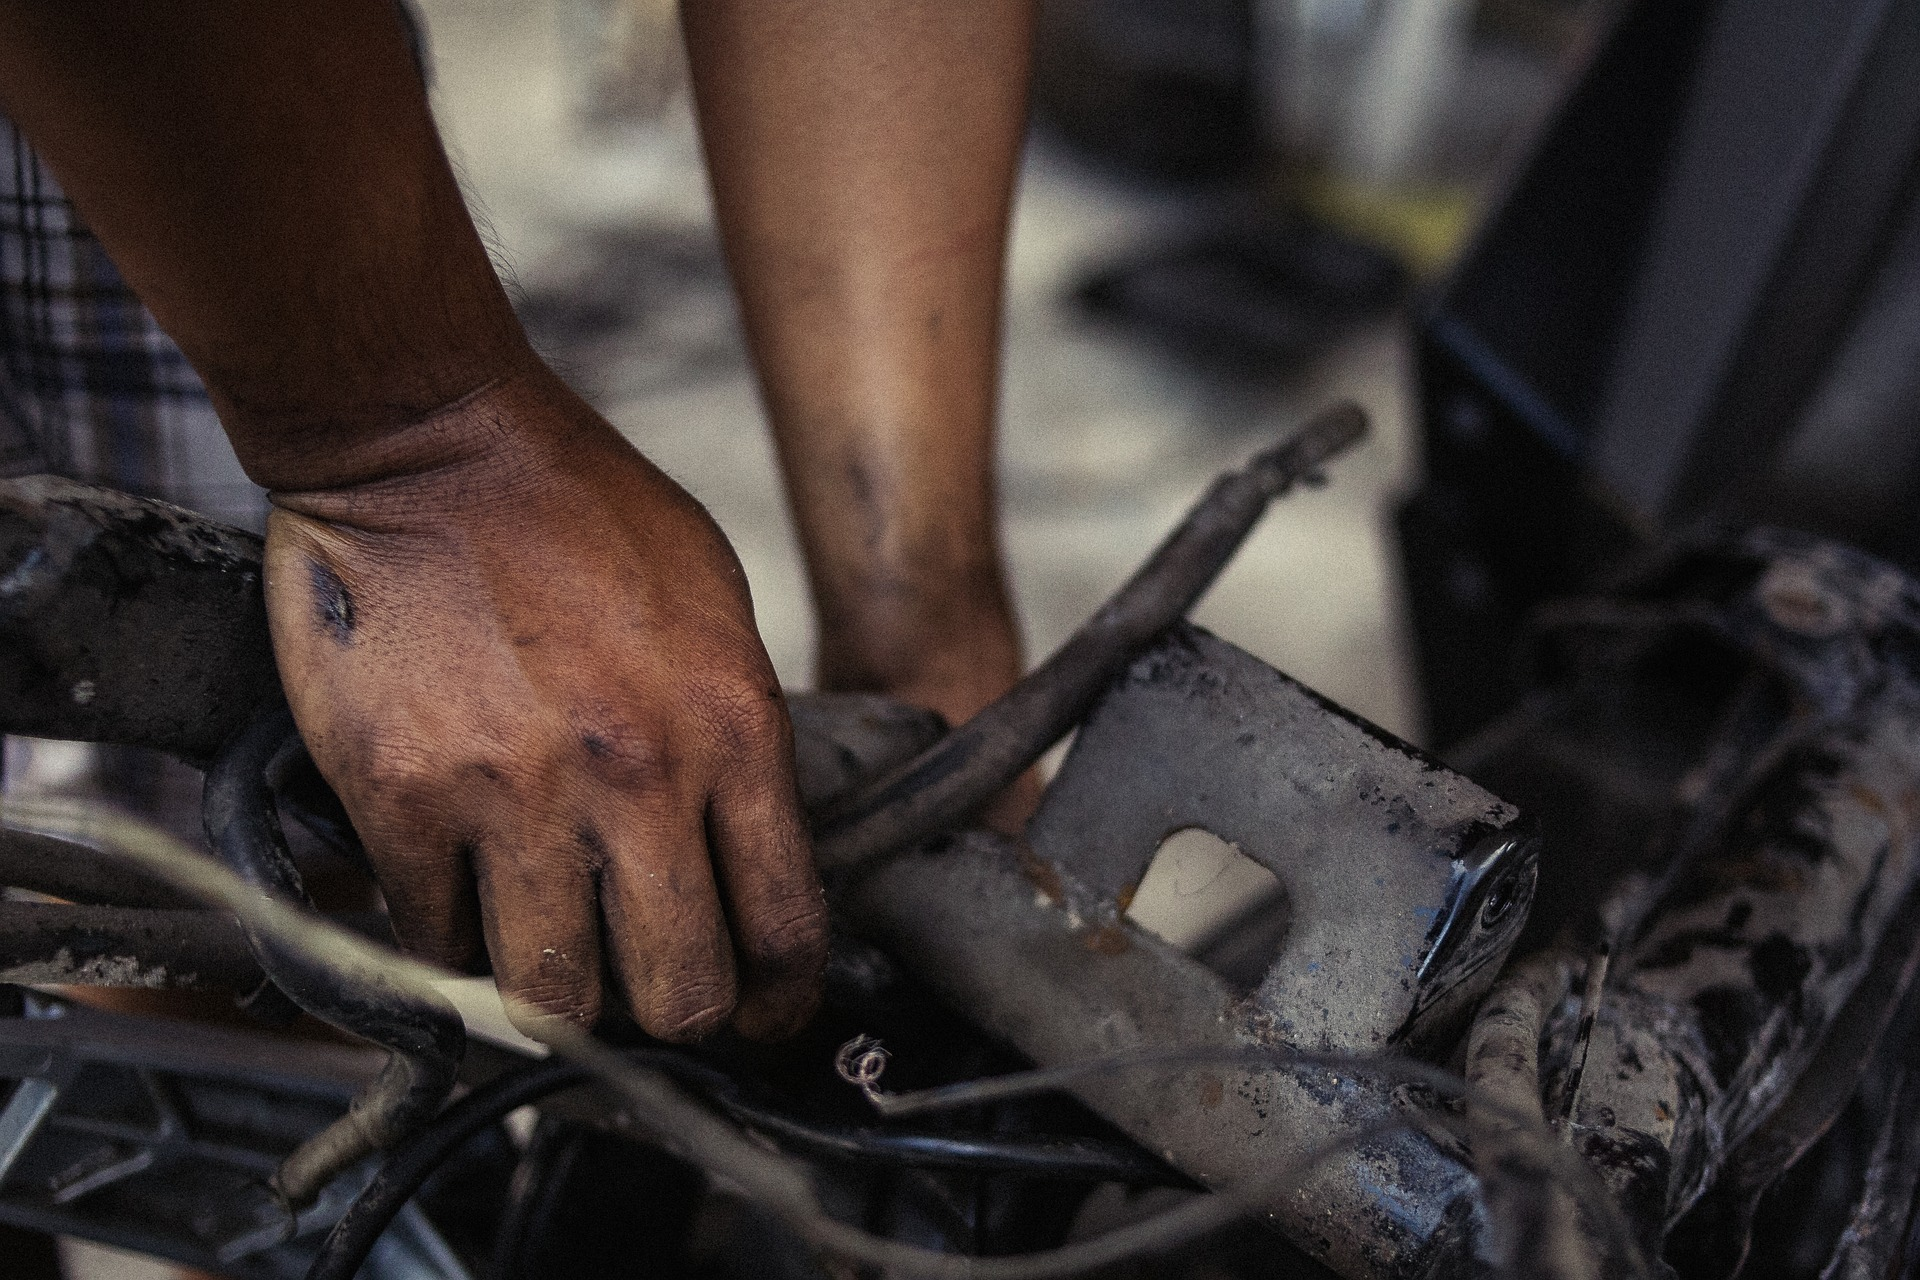 Looking for an HGV mechanic role? Make sure you highlight these skills